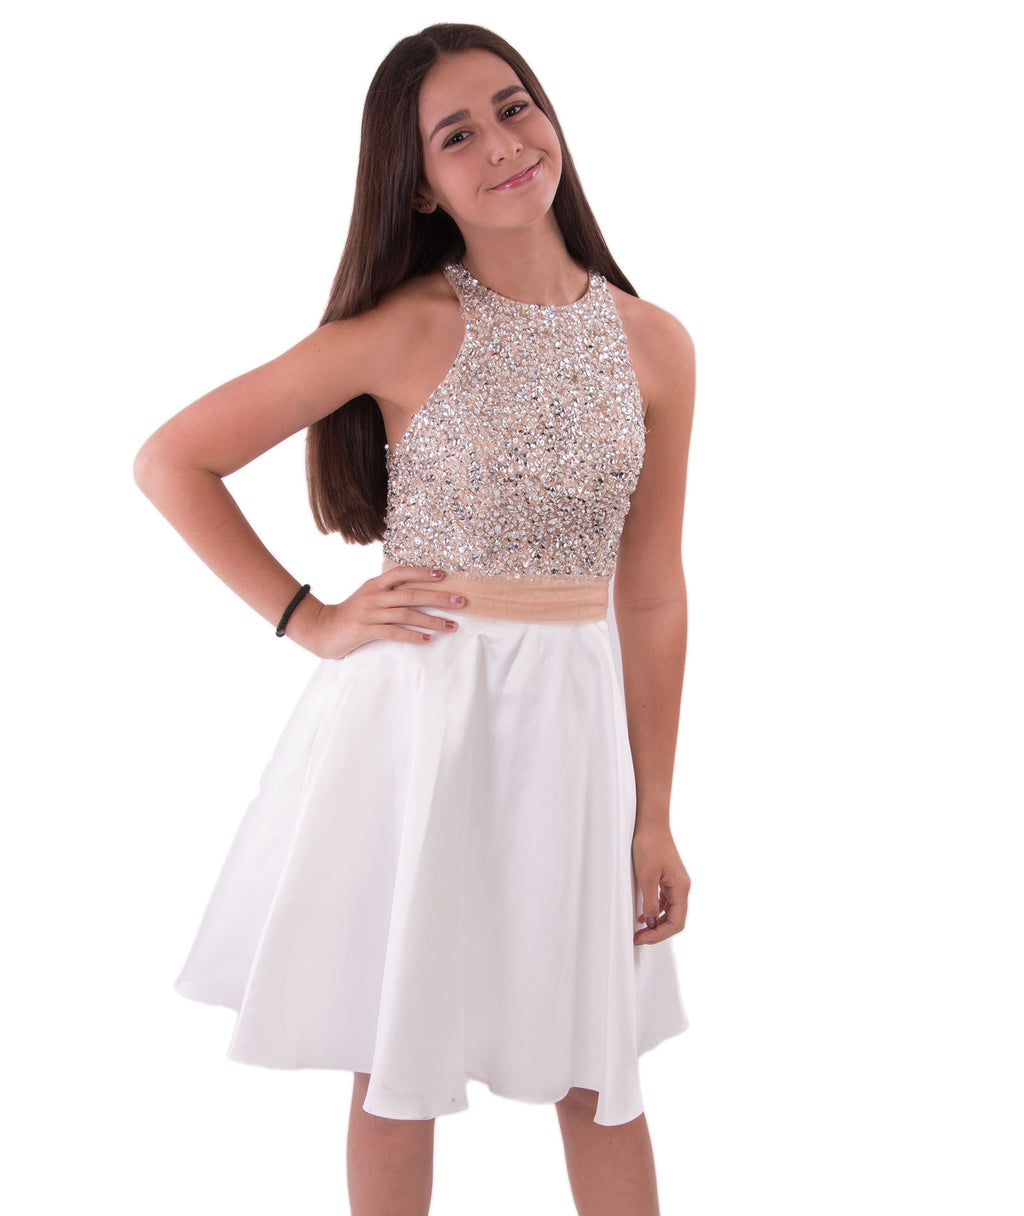 Jovani Womens Glitter Ivory Dress - Frankie's on the Park